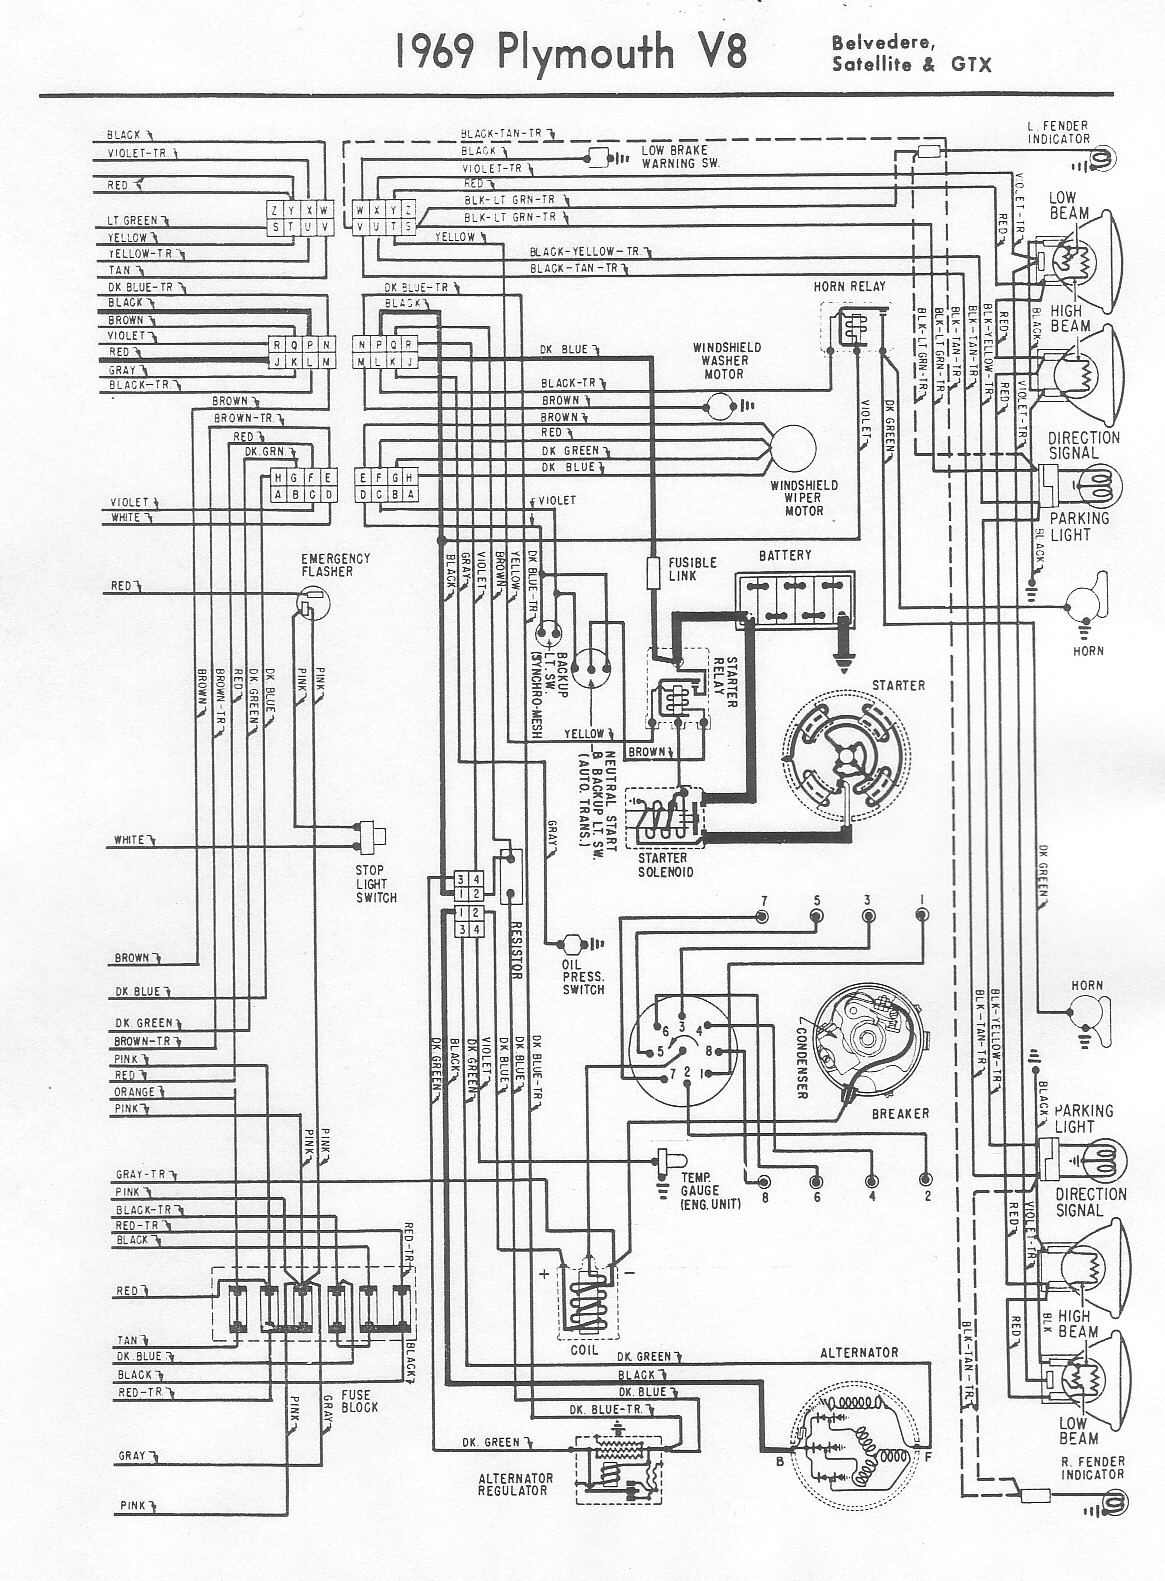 1974 Challenger Wiring Diagram Starter Library Charger 69belvederegtxsatelliteroadrunnerb 73 Plymouth Road Runner On Download Wirning Diagrams Dodge